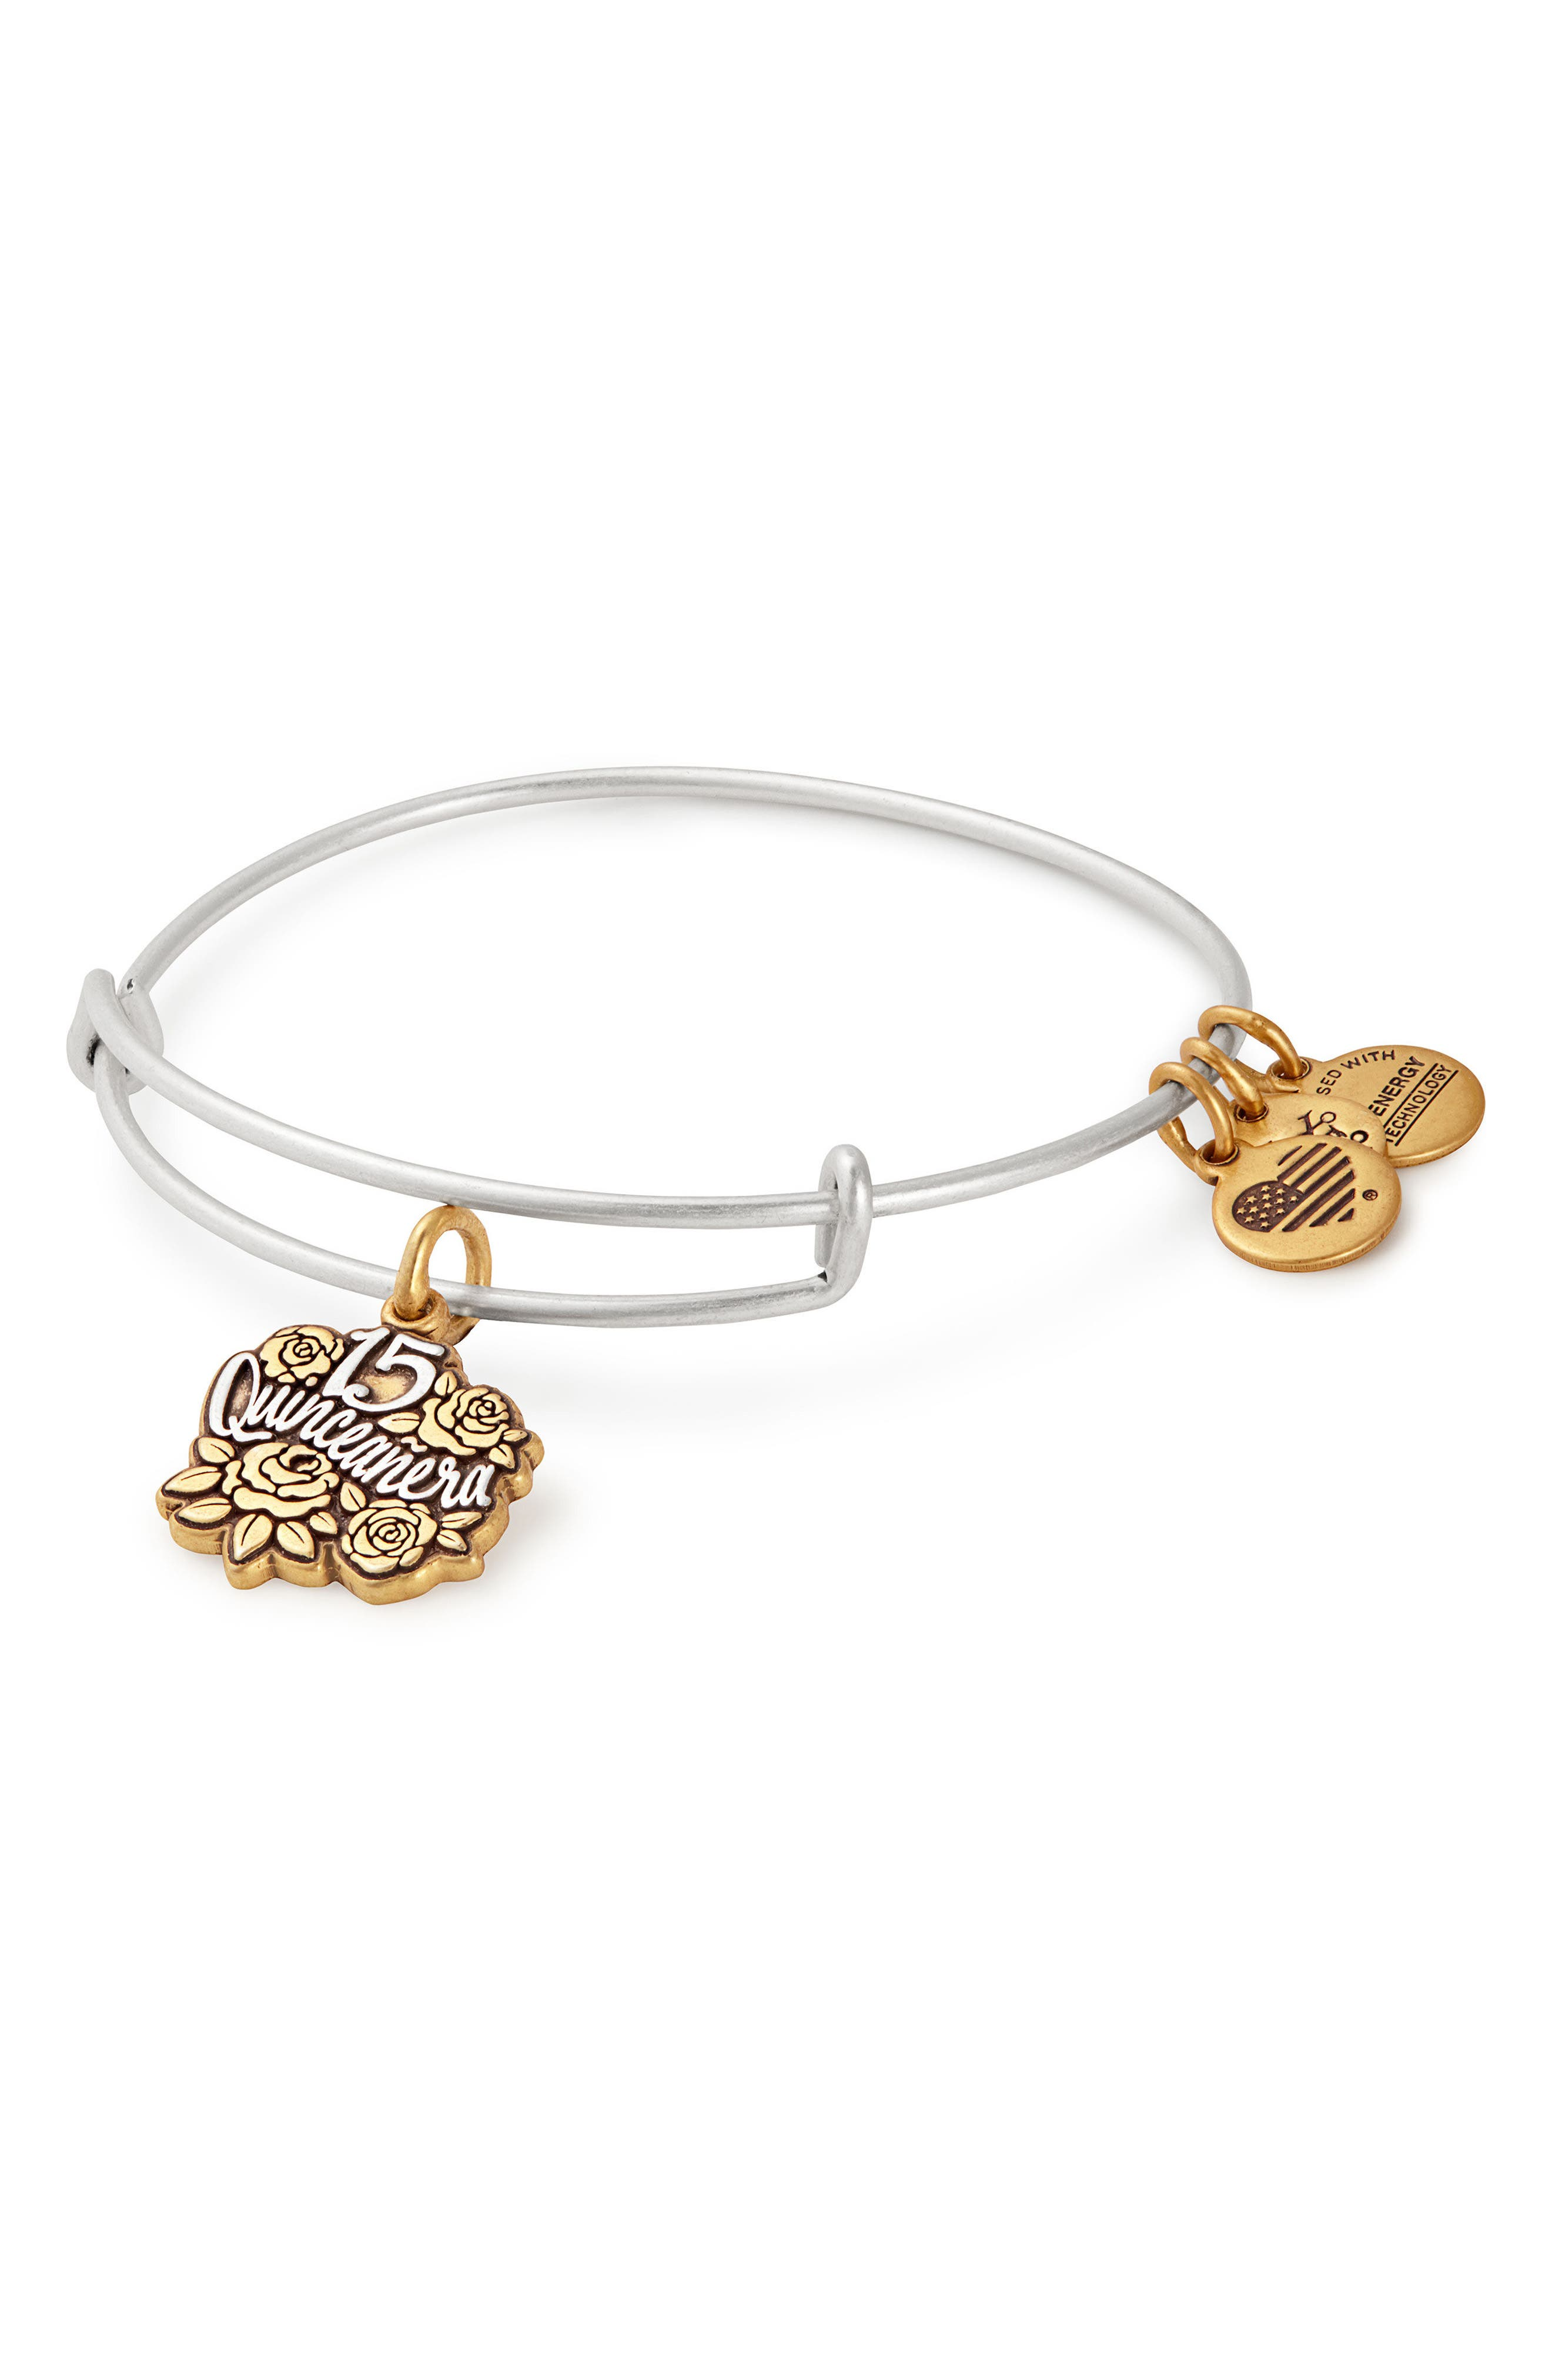 Alex and Ani Jewelry Nordstrom